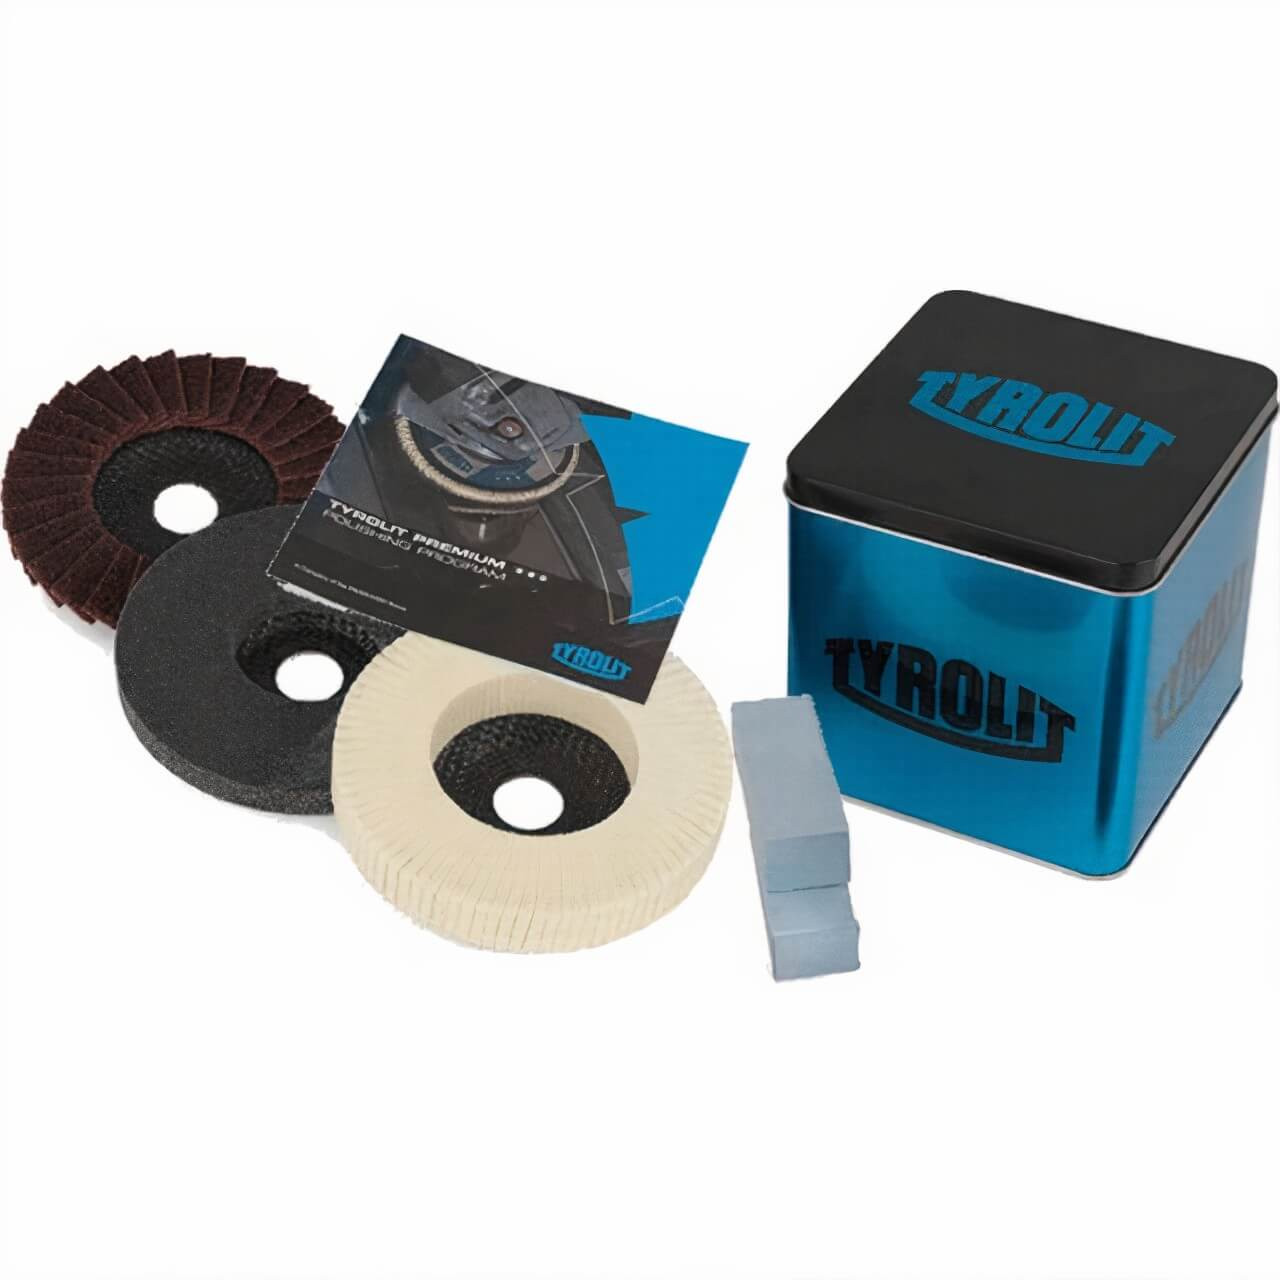 Tyrolit 125mm Premium Polishing Kit